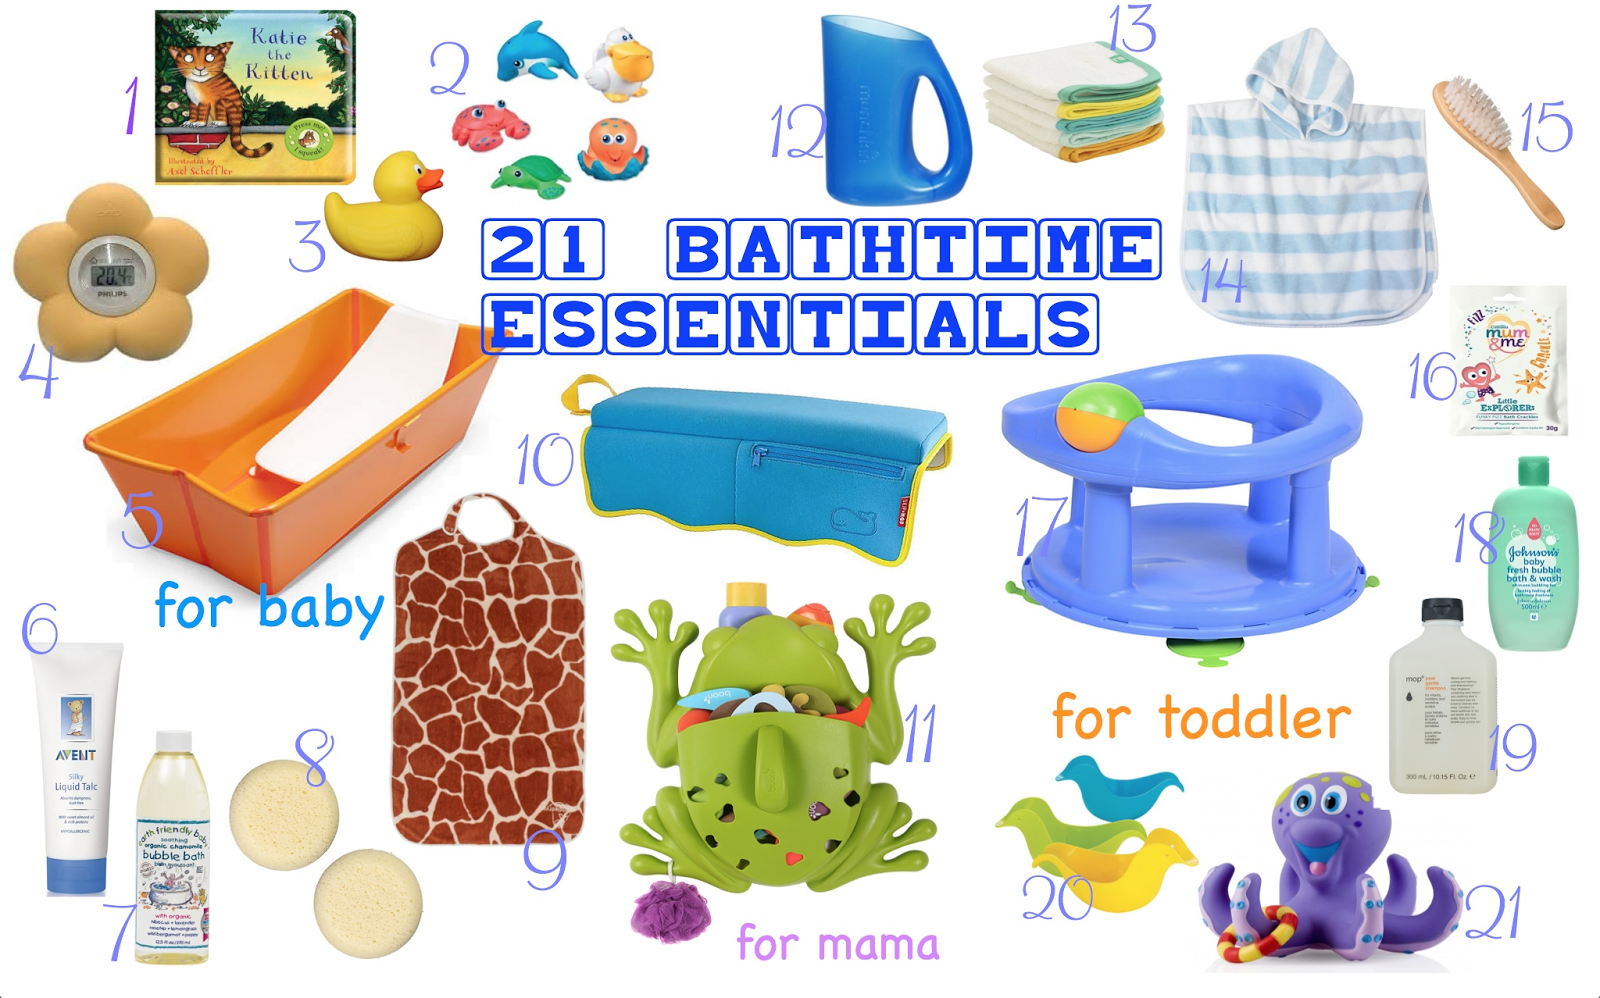 21 Bathtime Essentials for babies and toddlers from £1 | V. I. ...